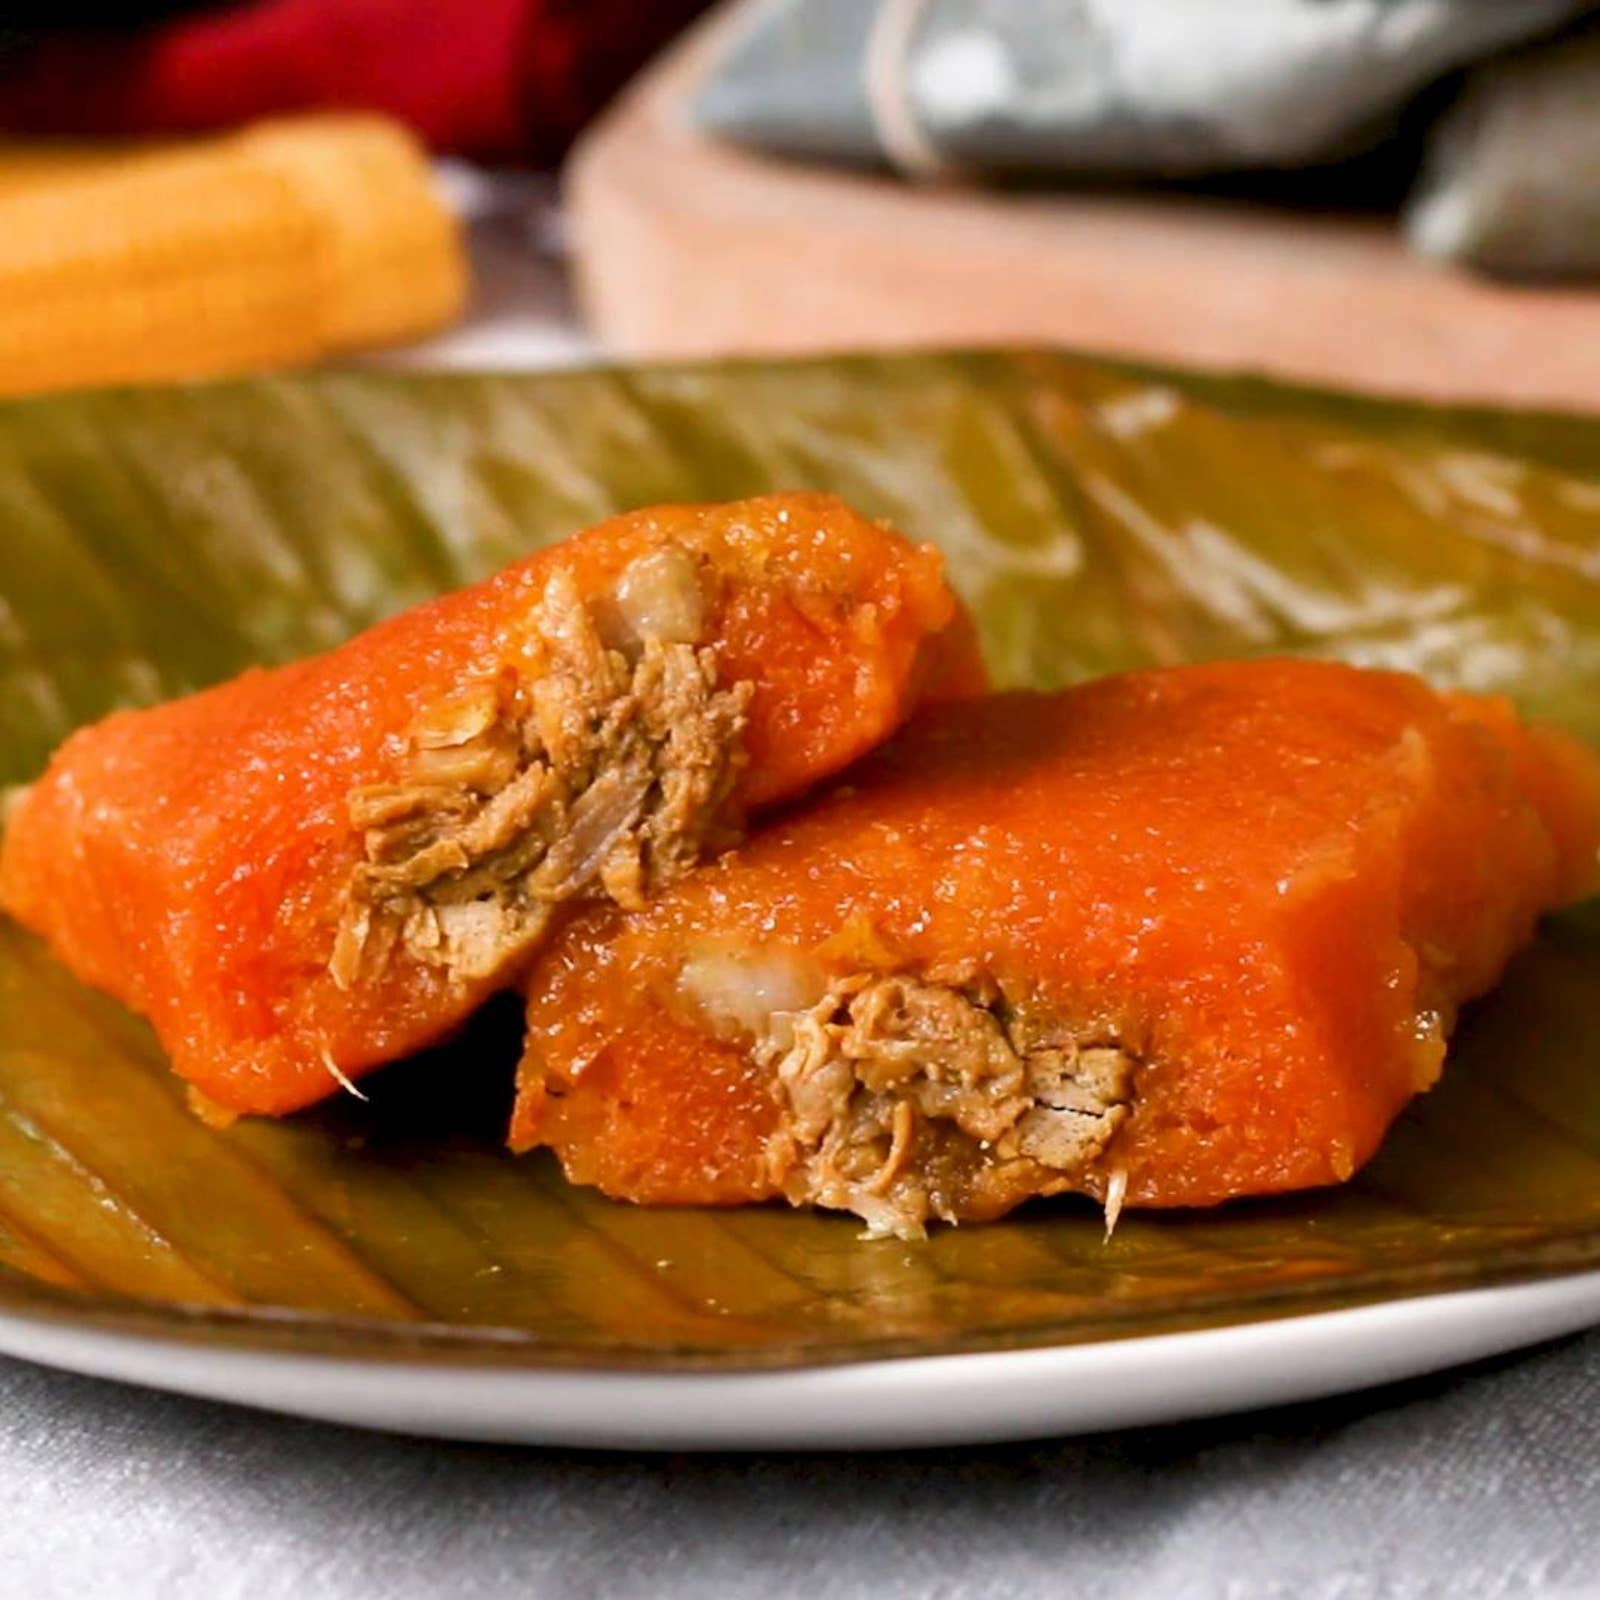 Pasteles De Yuca As Made By Iván Emilio